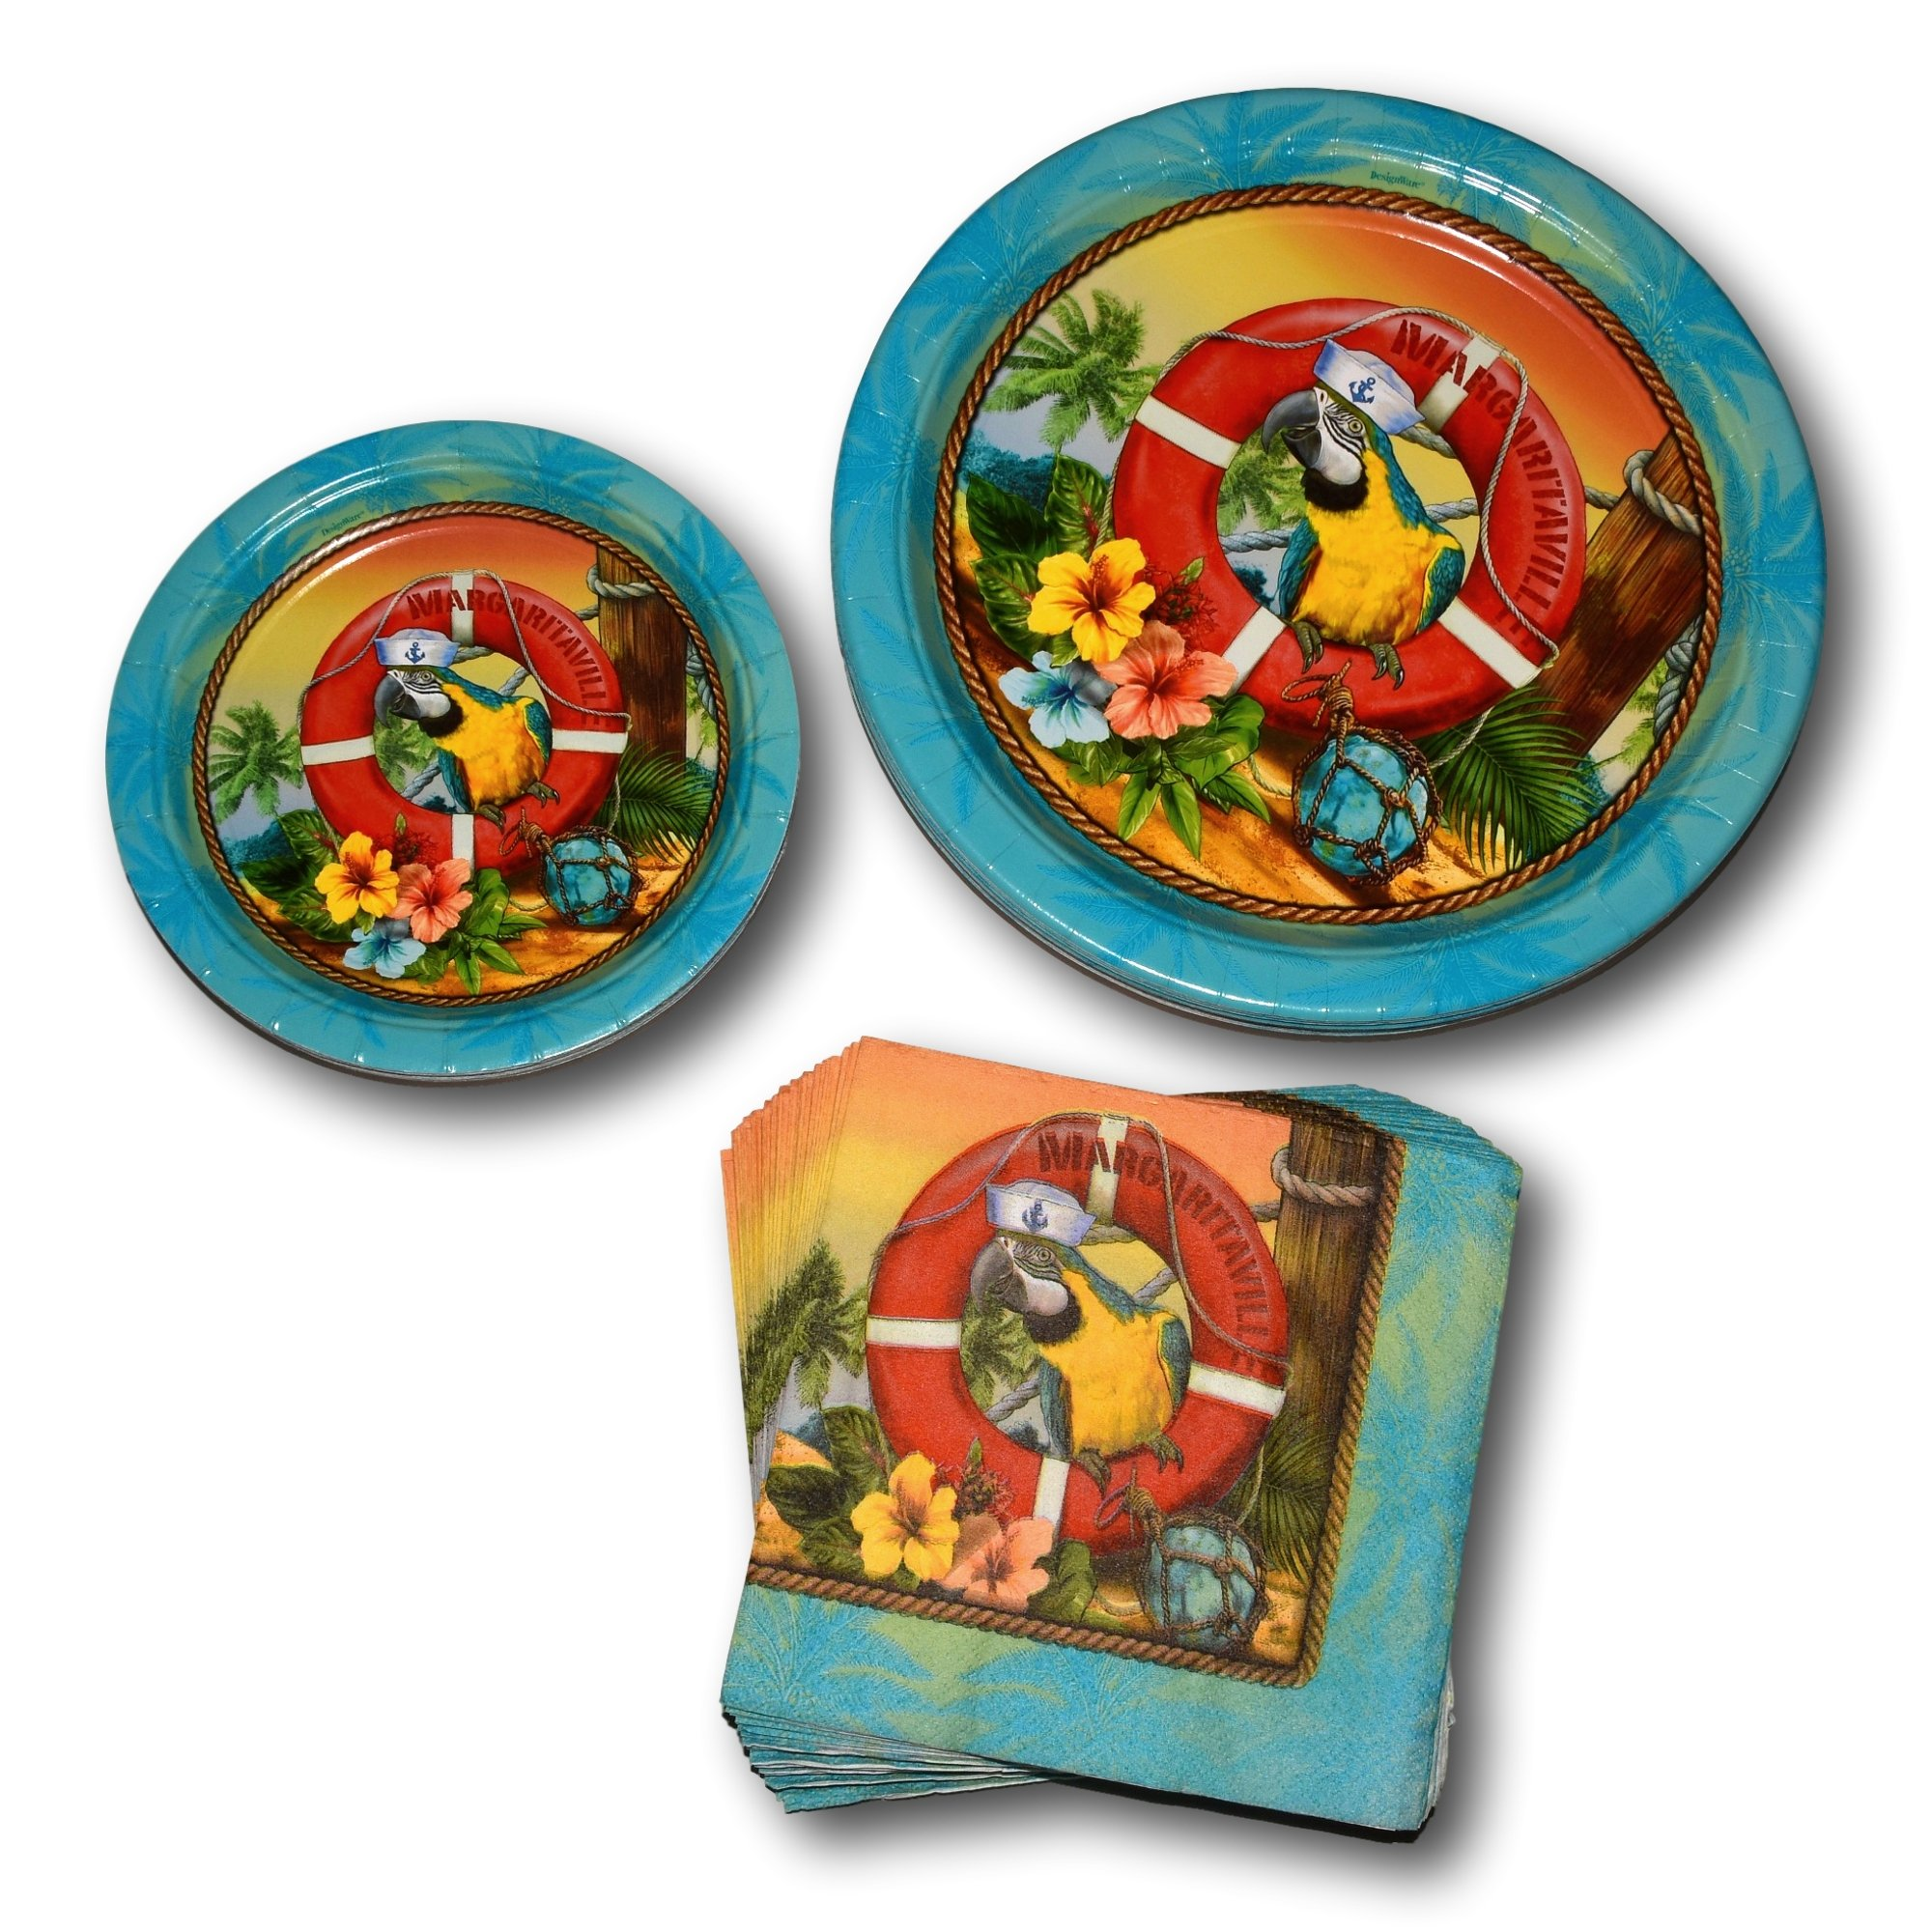 Combined Brands Summer Hawaiian Luau Tropical Beach Margaritaville Paper Plates and Napkins Party Supply Bundle - Picnic Tableware Set Includes Dinner Plates - Dessert Plates and Parrot Napkins